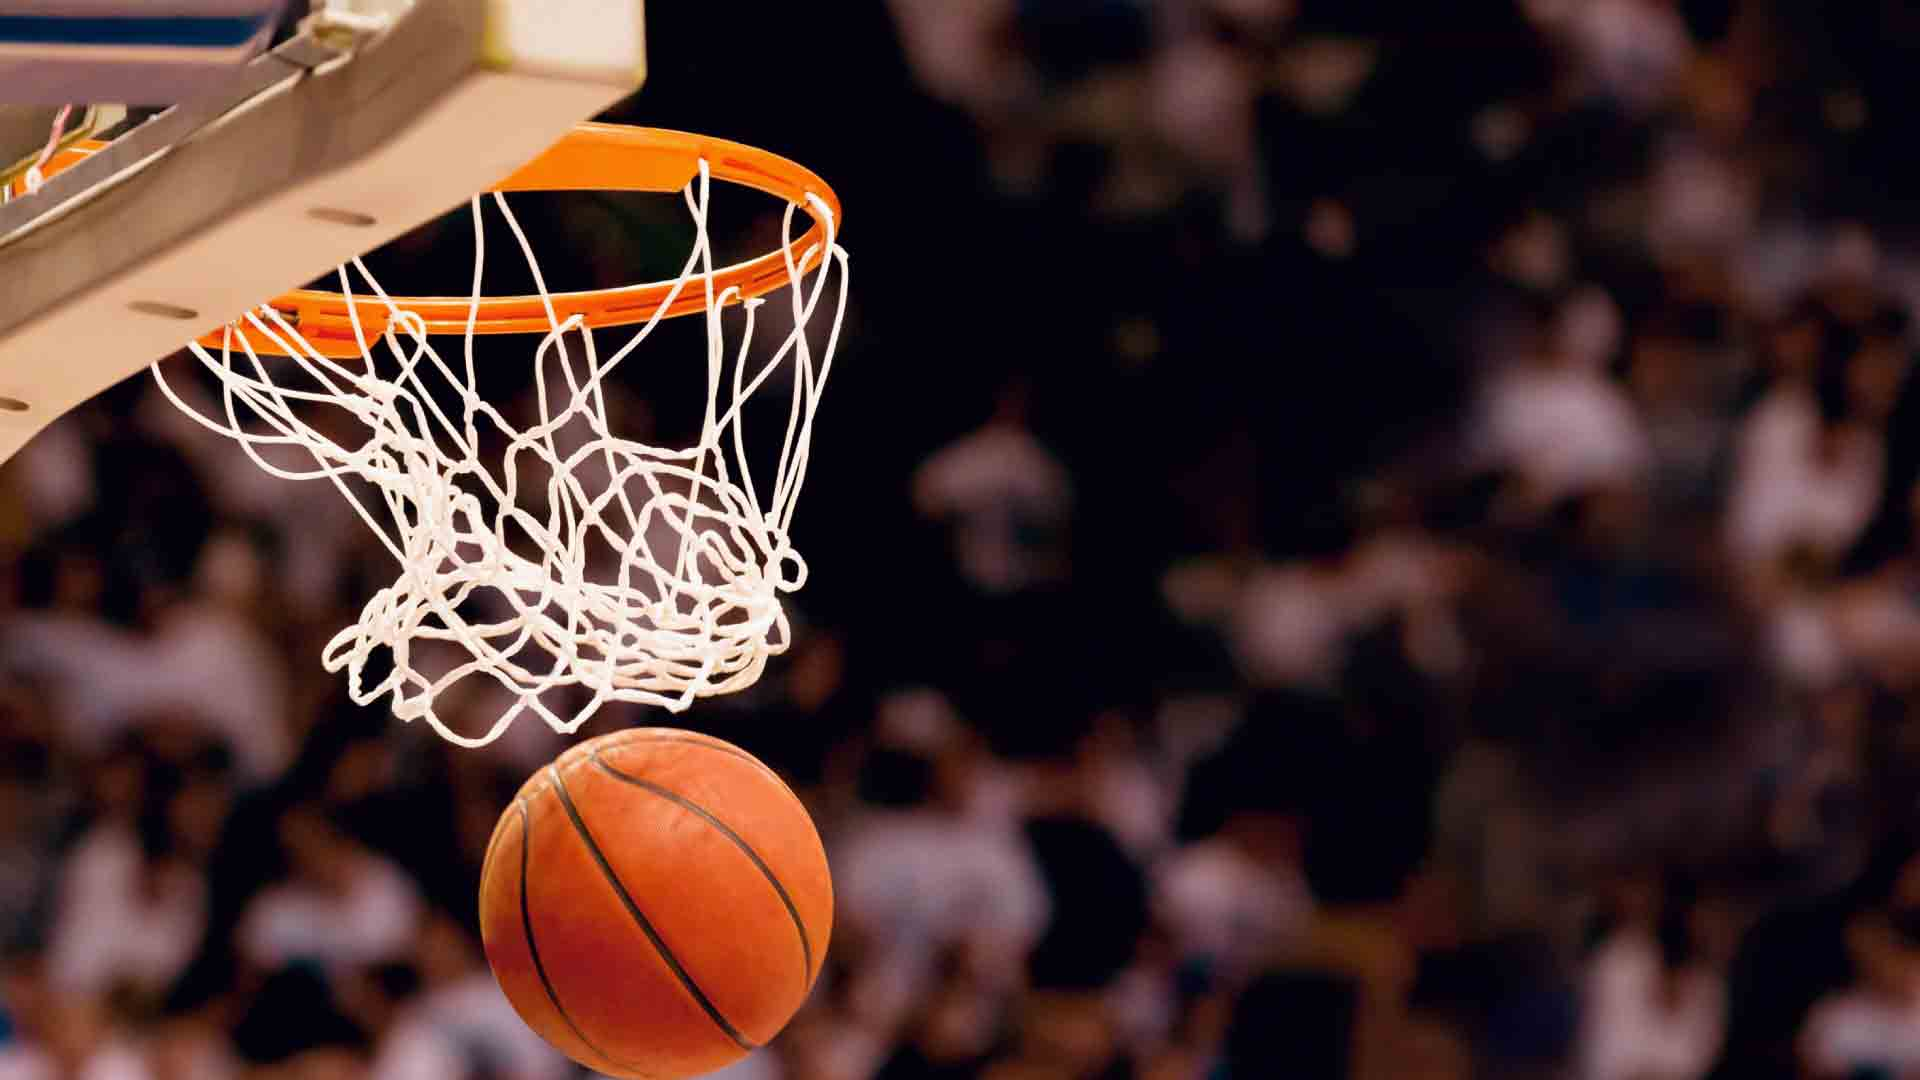 Top 5 Indian Basketball Players We Rarely Know About